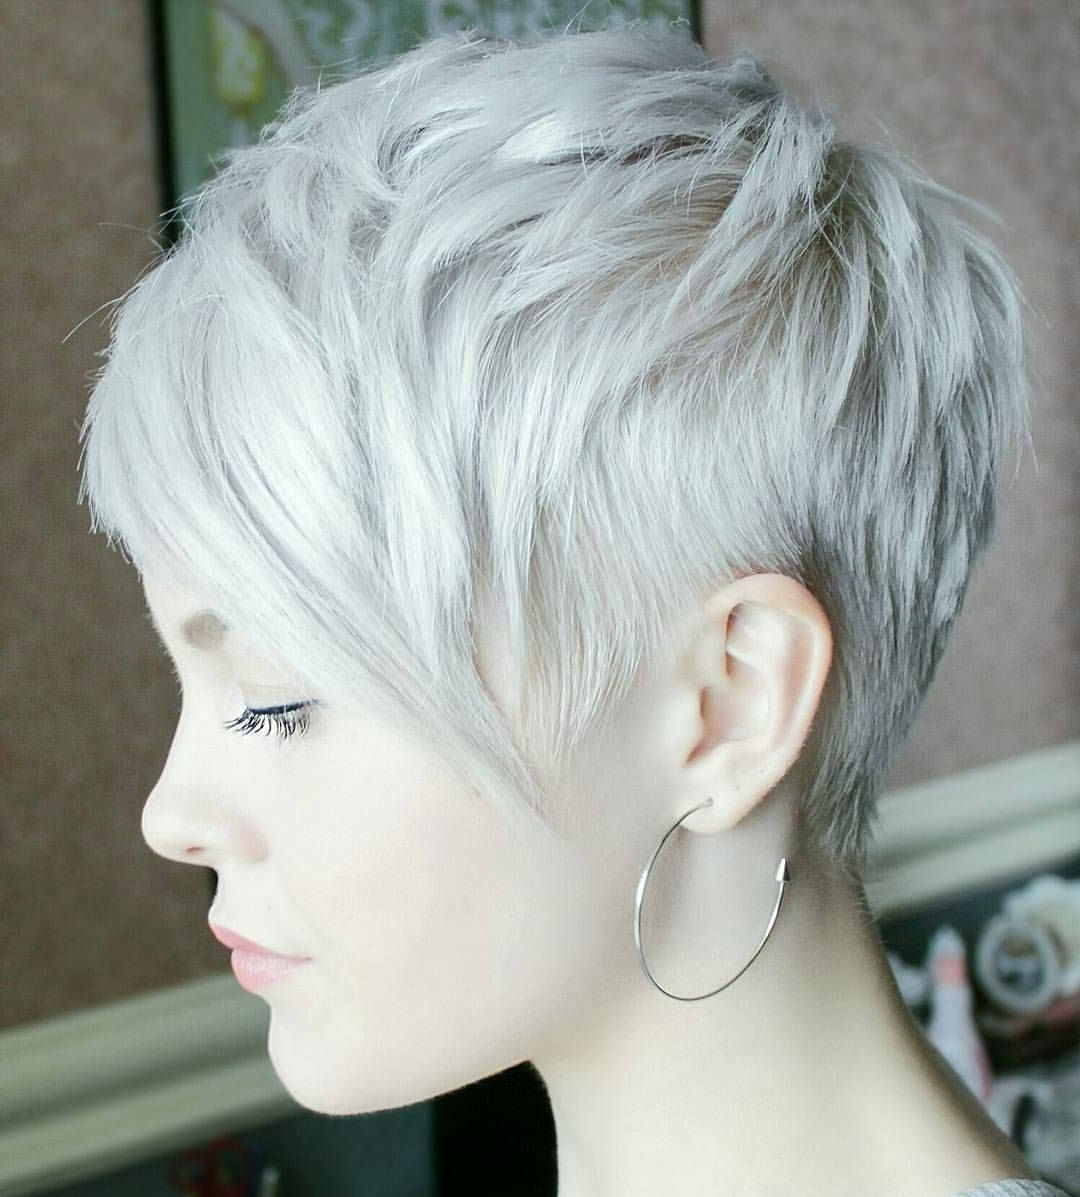 50 Trendsetting Short And Long Pixie Haircut Styles — Cutest Of Them Pertaining To Sweeping Pixie Hairstyles With Undercut (View 10 of 20)